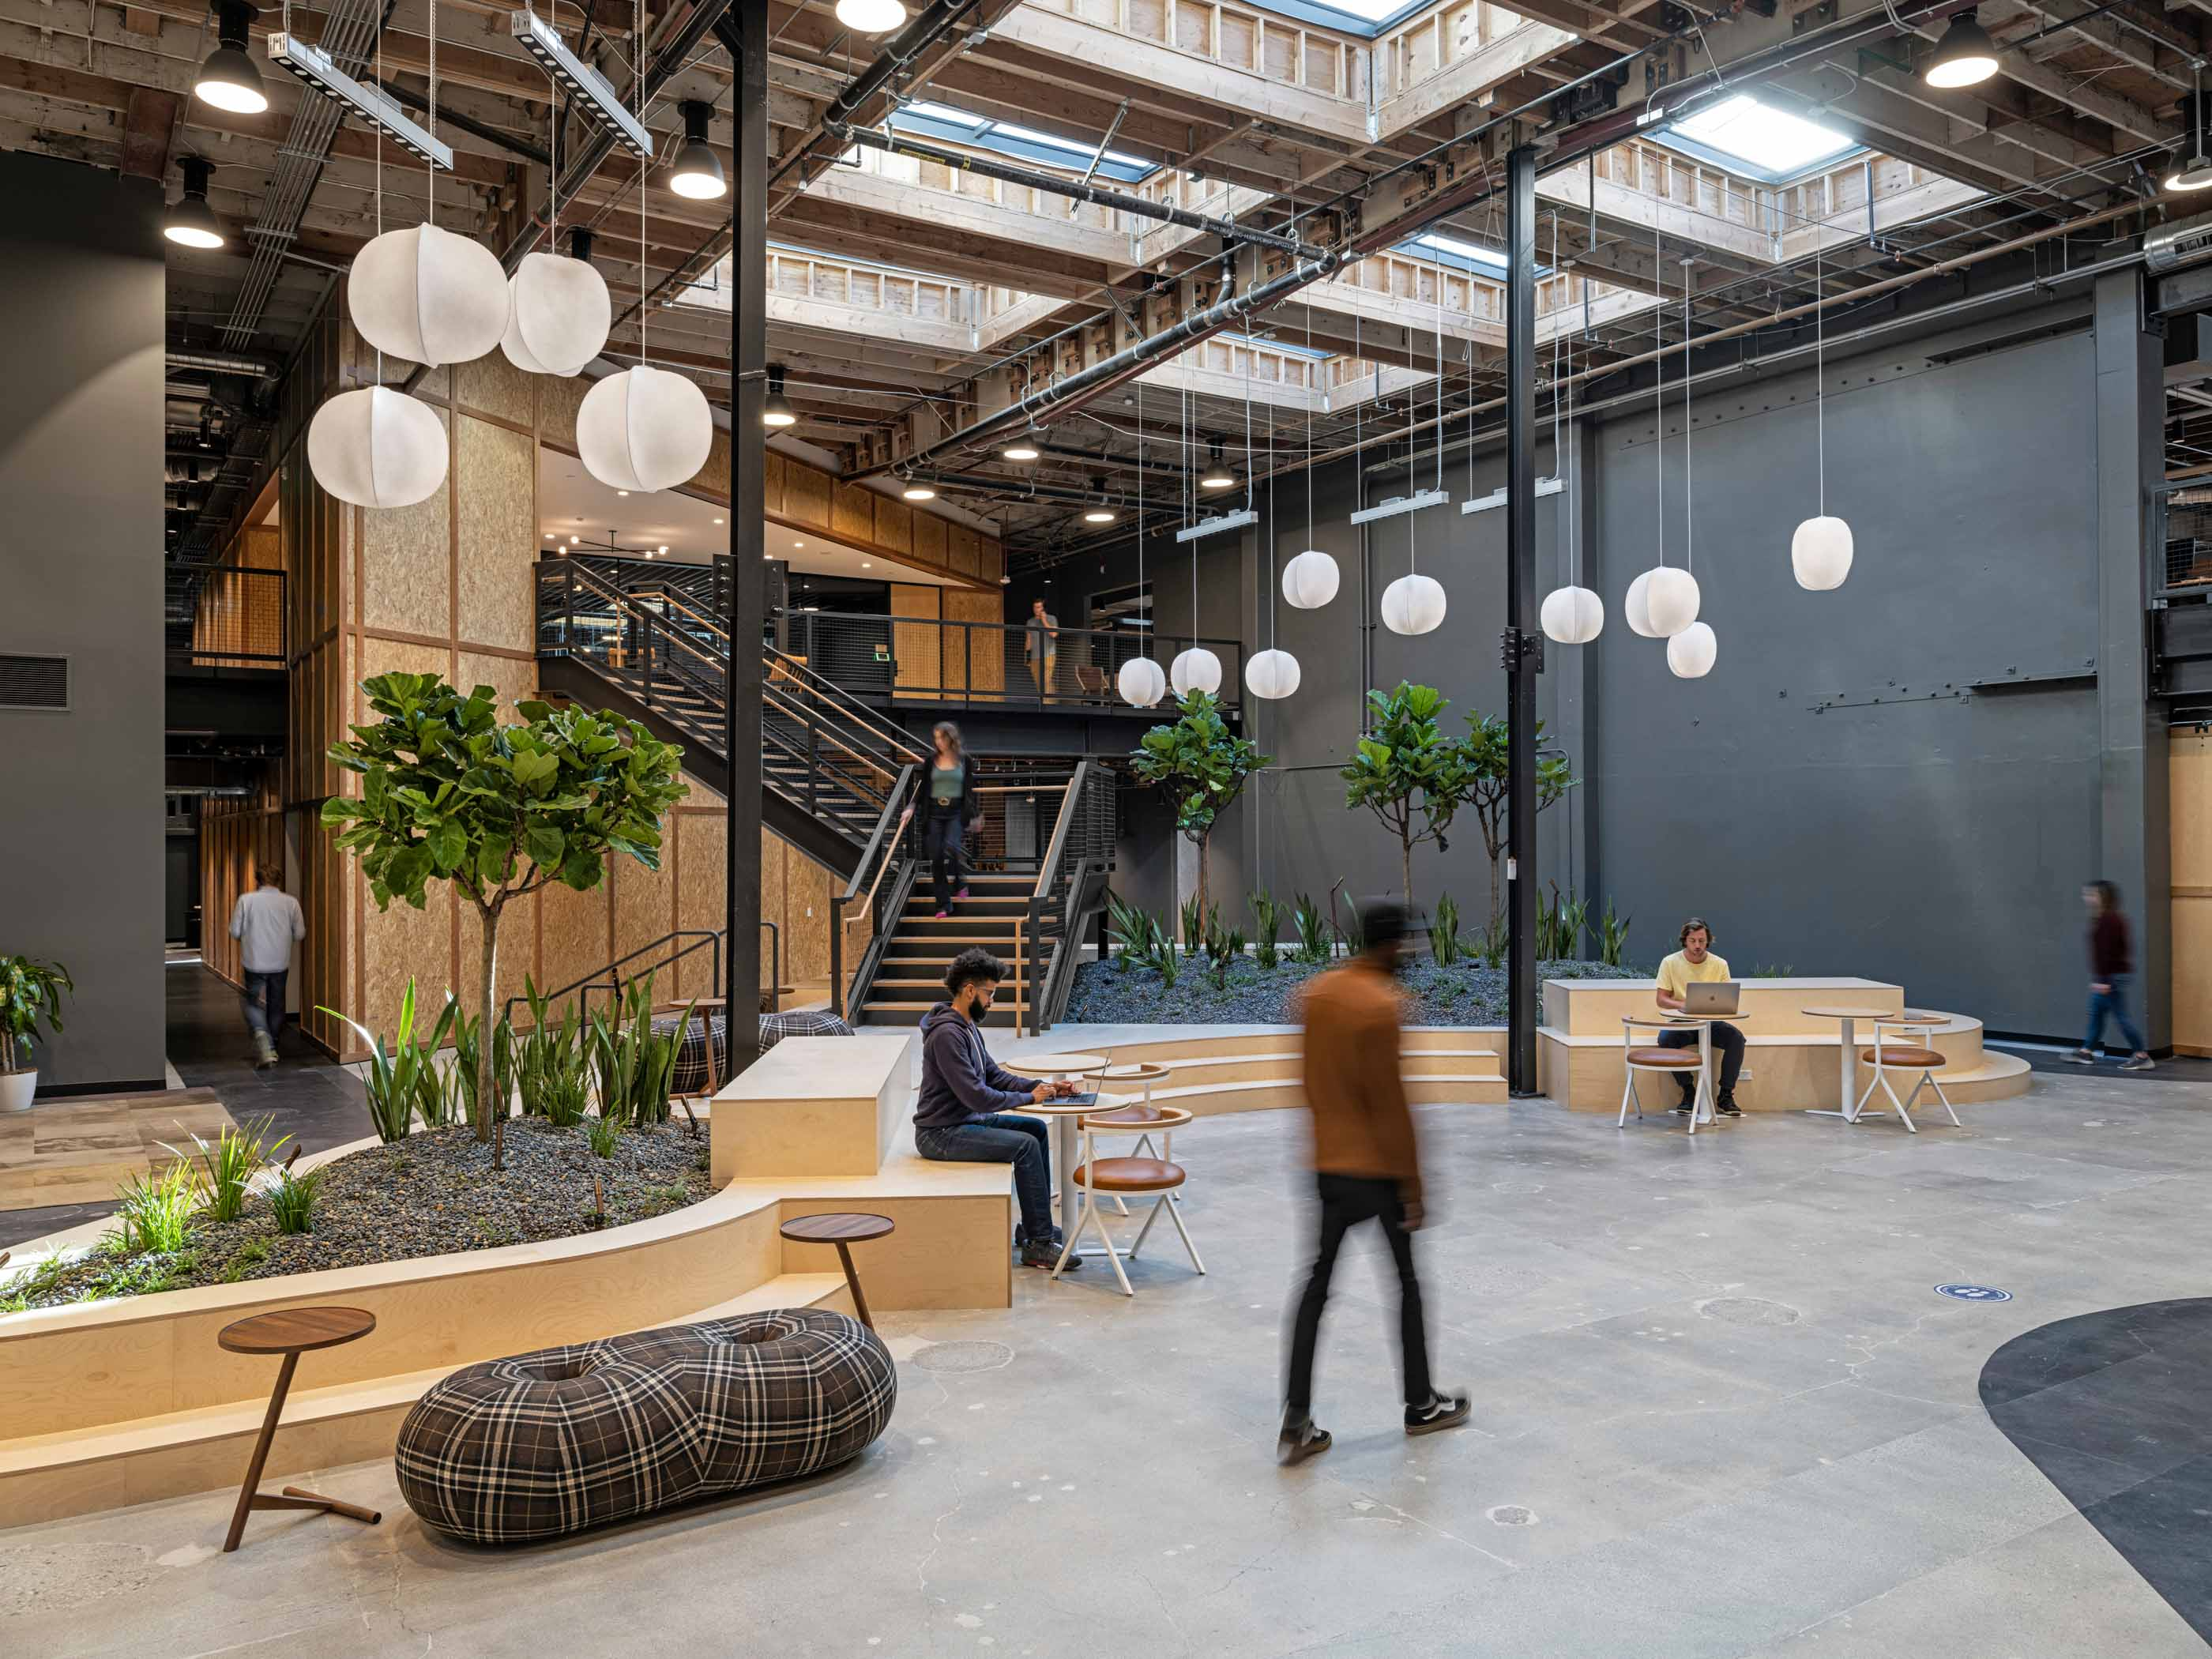 people working at desks in a common area with stairs and plants behind them and paper lanterns hanging from the ceiling